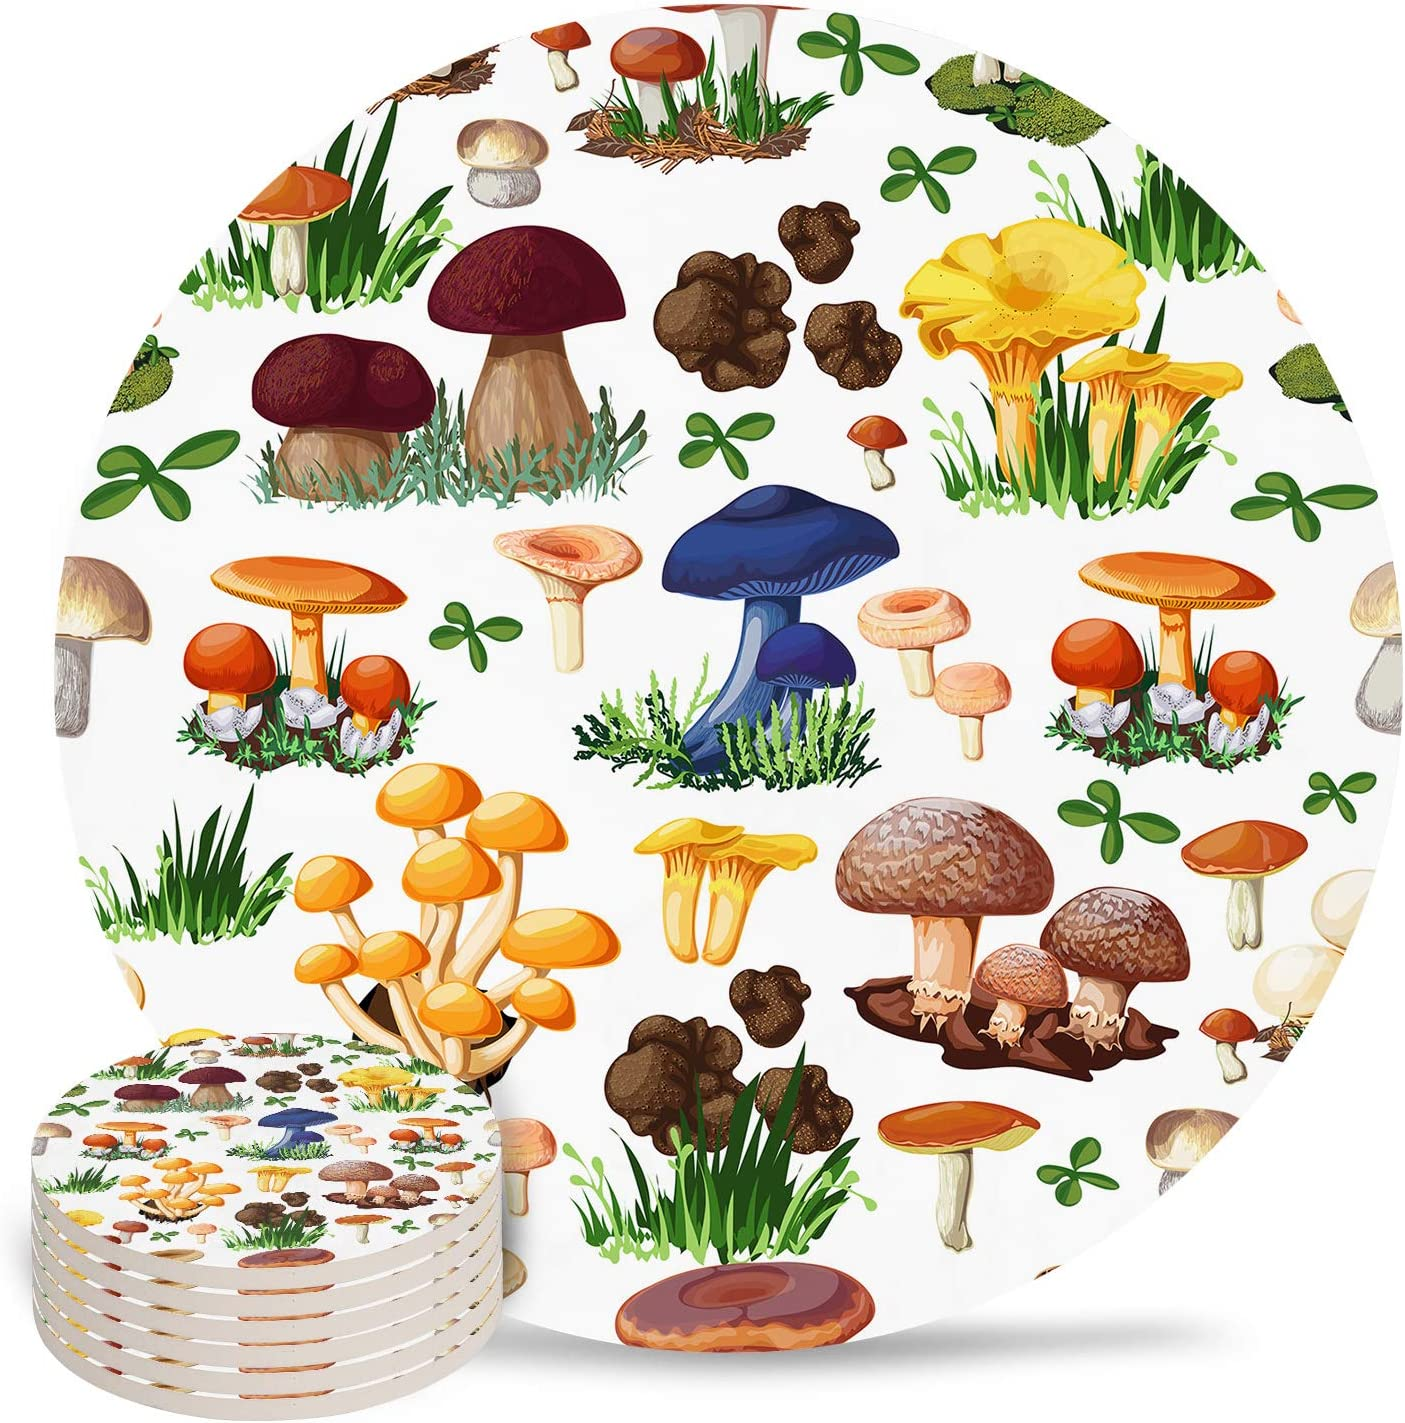 Absorbent Ceramic Drink Coasters for Table Decor, Cartoon Plant Mushroom Child Heat-Proof Cups Place Mats for Wine Glasses Cups & Mugs, 6 PCS Set Round Coaster for Home or Bar Use